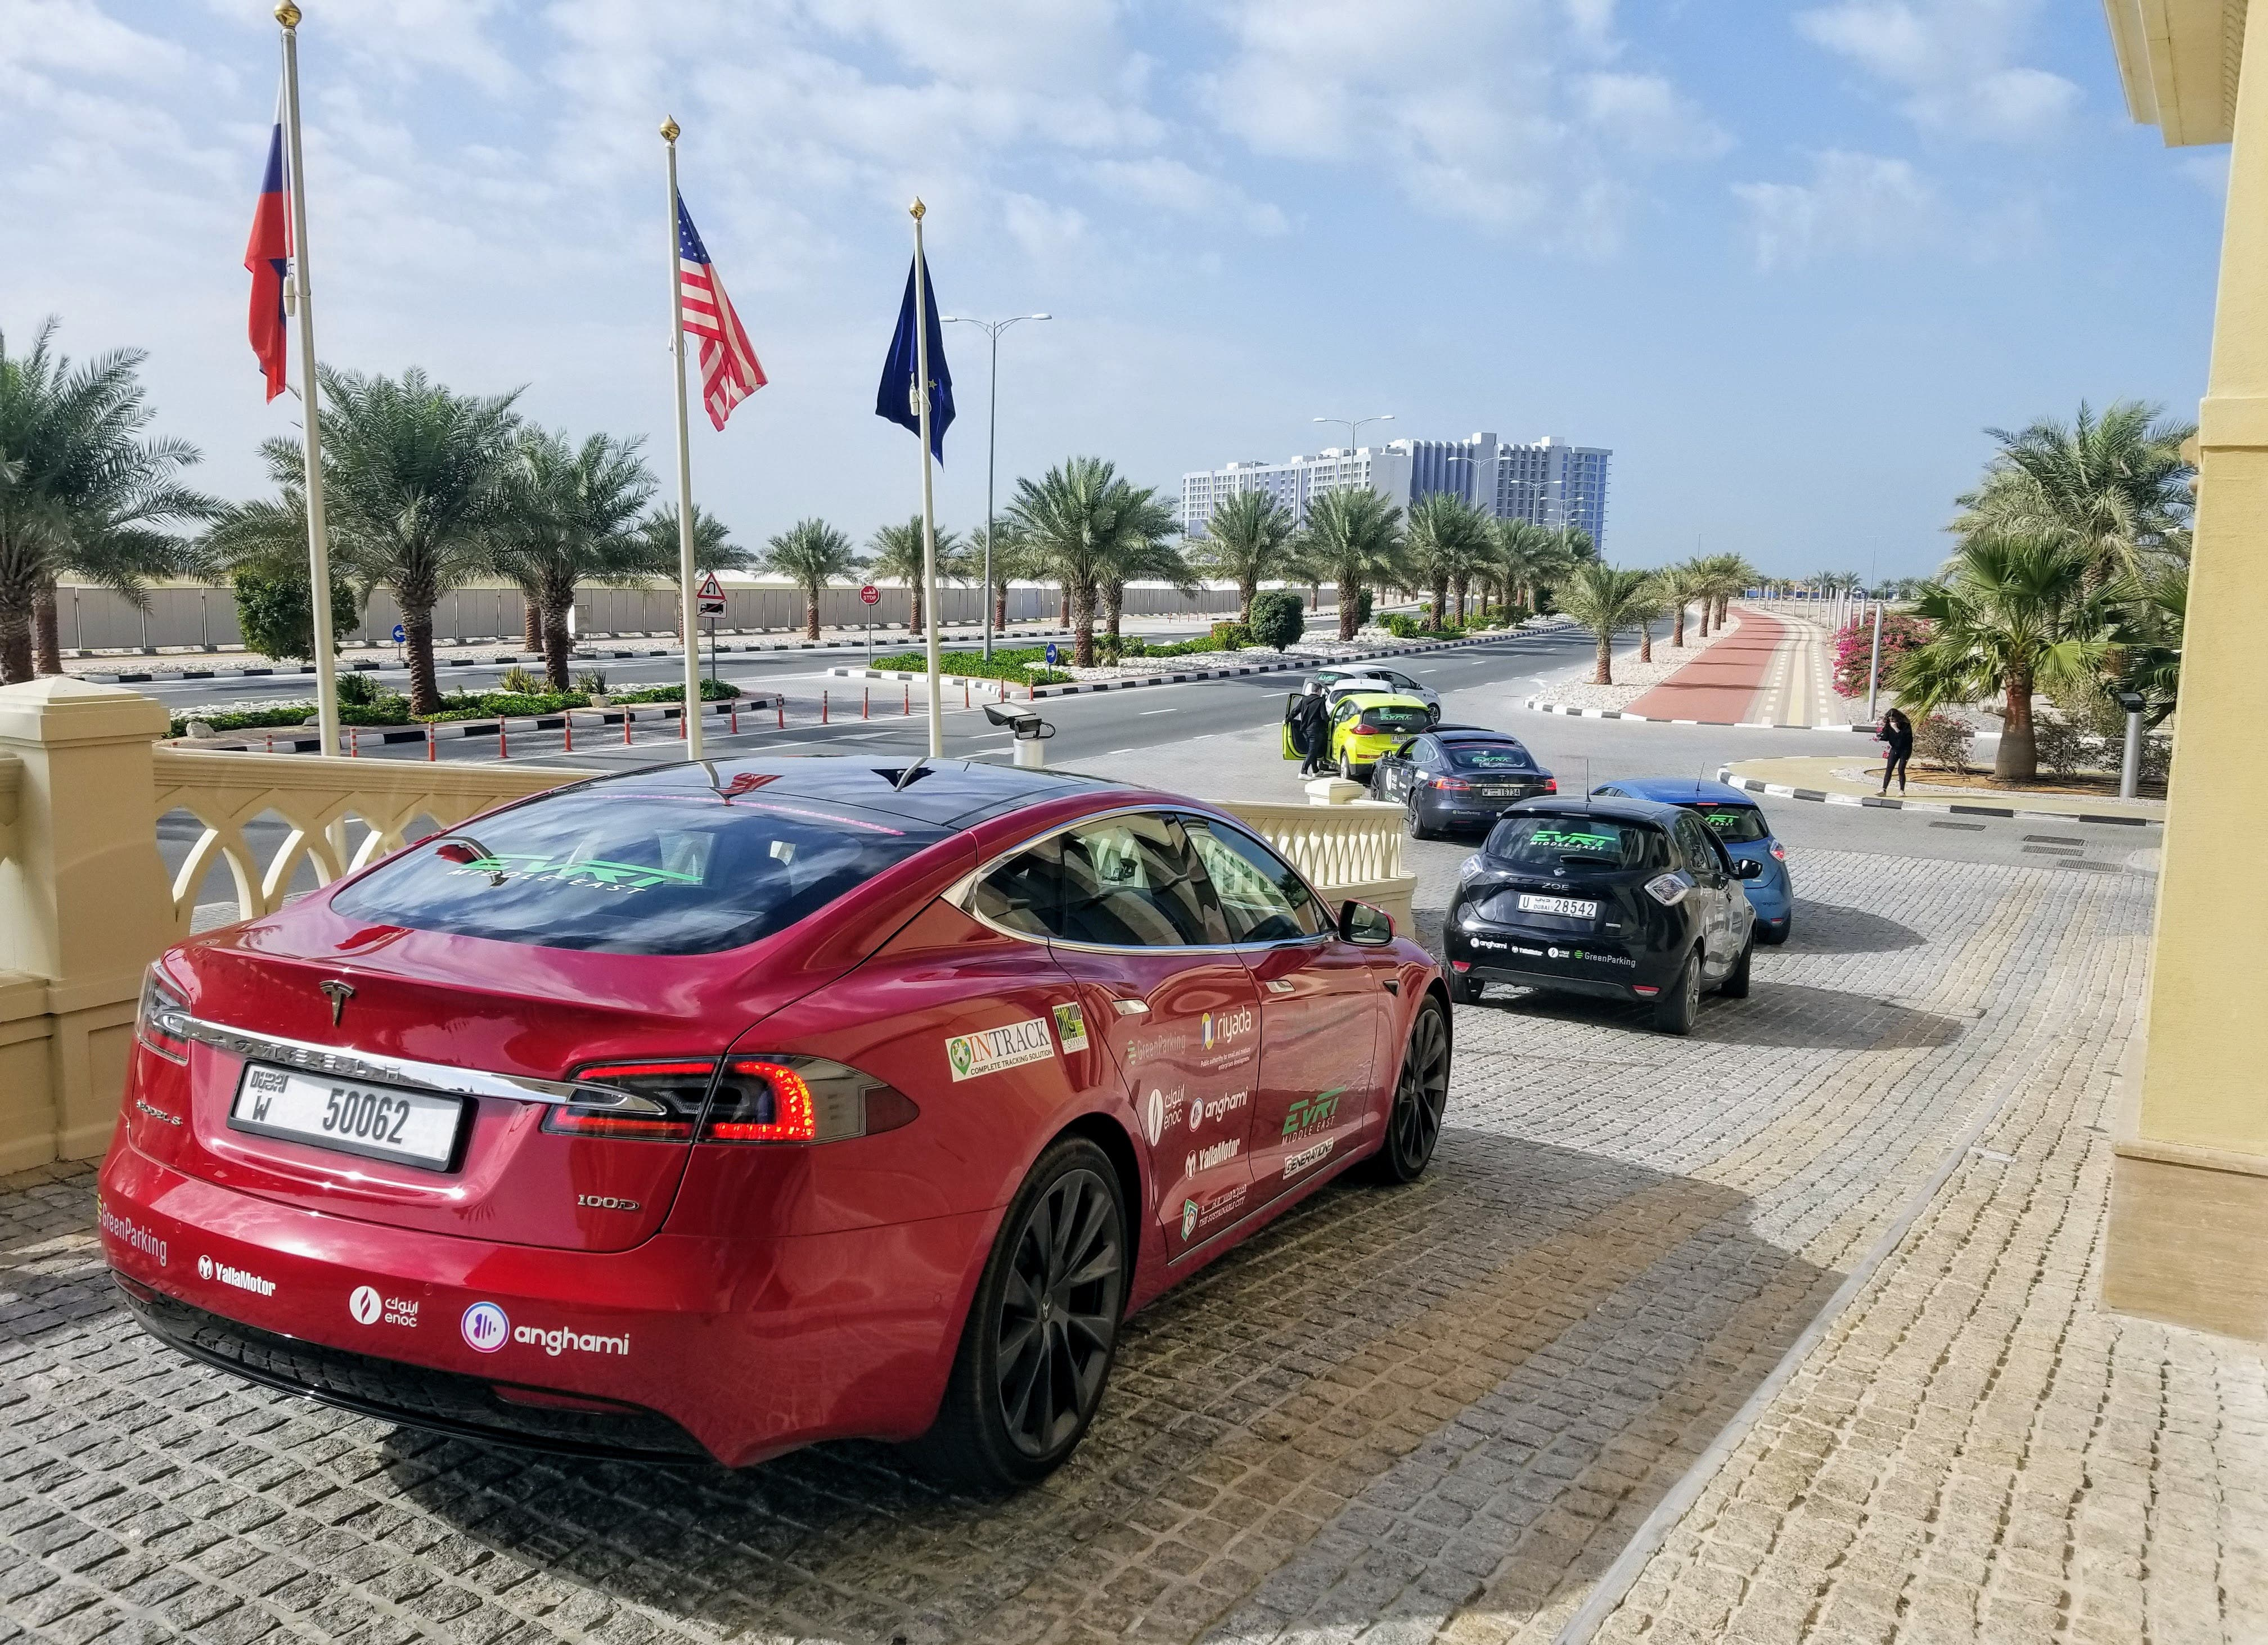 14e86af68c The 2019 Electric Vehicle Road Trip Charges Into The Middle East —  CleanTechnica Exclusive